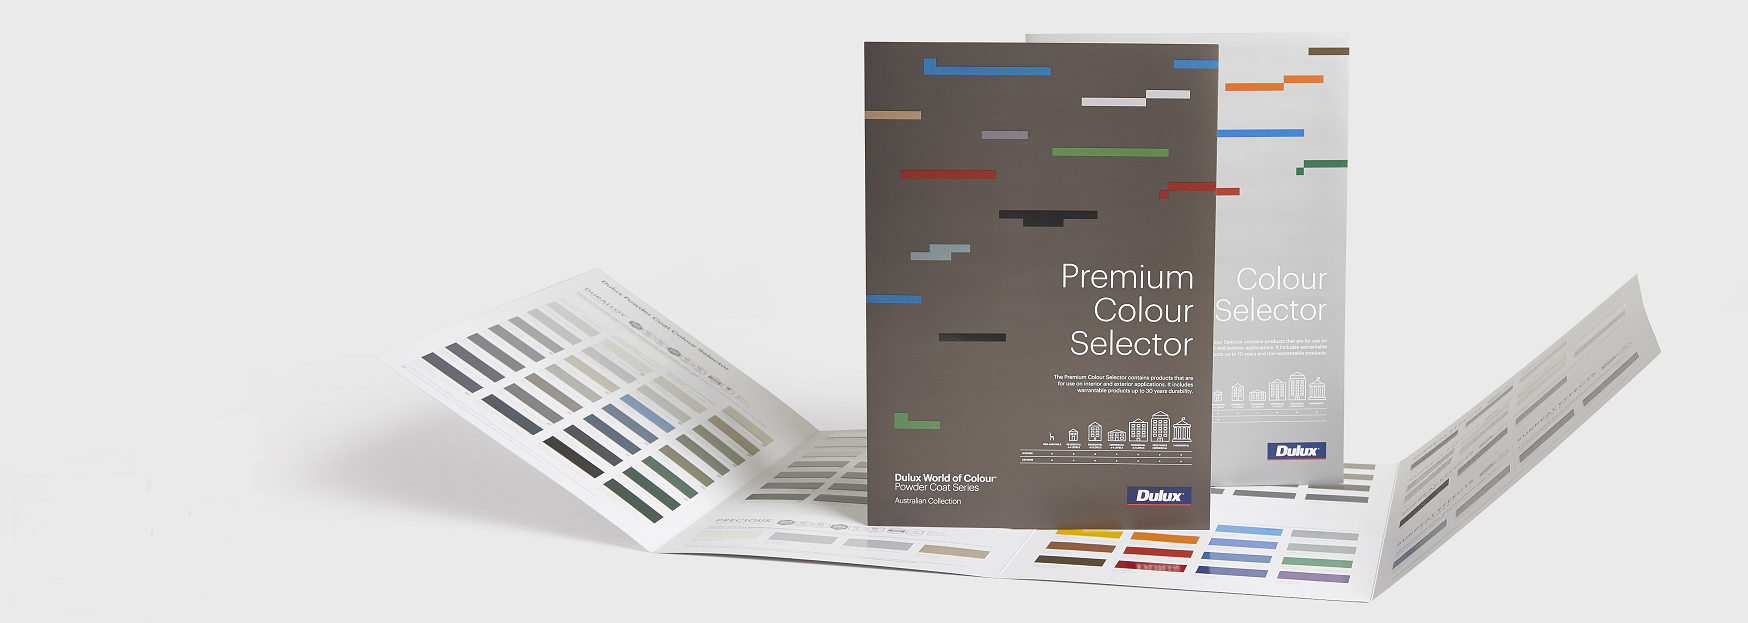 Colour Selector Banner image